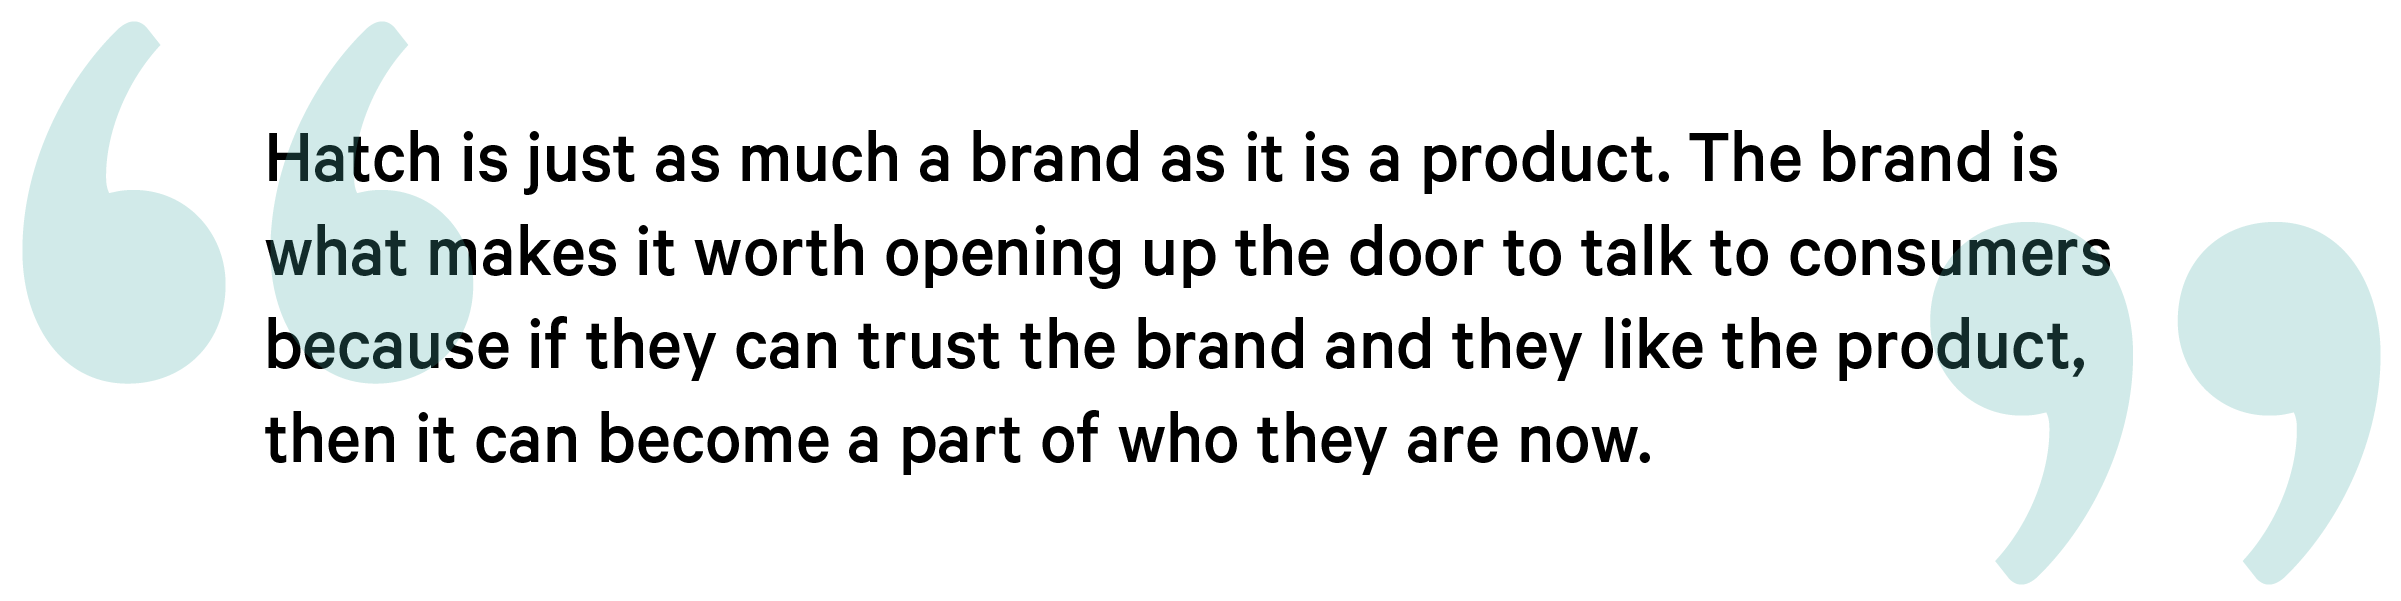 quote Hatch is just as much a brand as it is a product